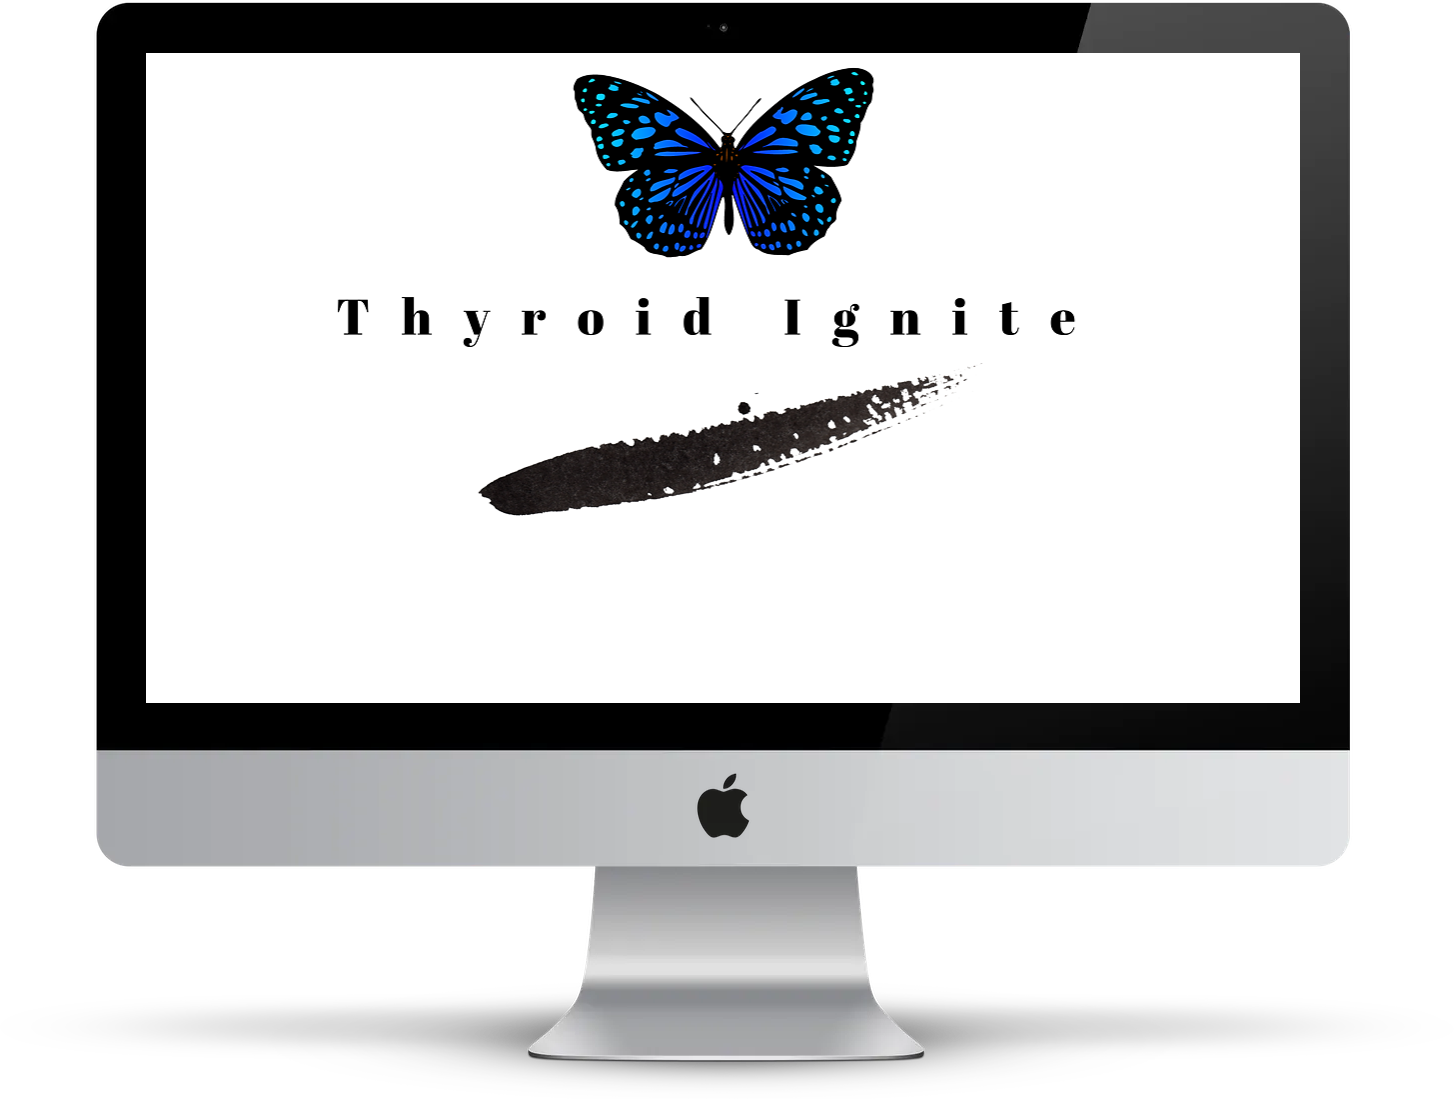 Thyroid Ignite is a 30 day reboot of your thyroid to gain energy and feel amazing